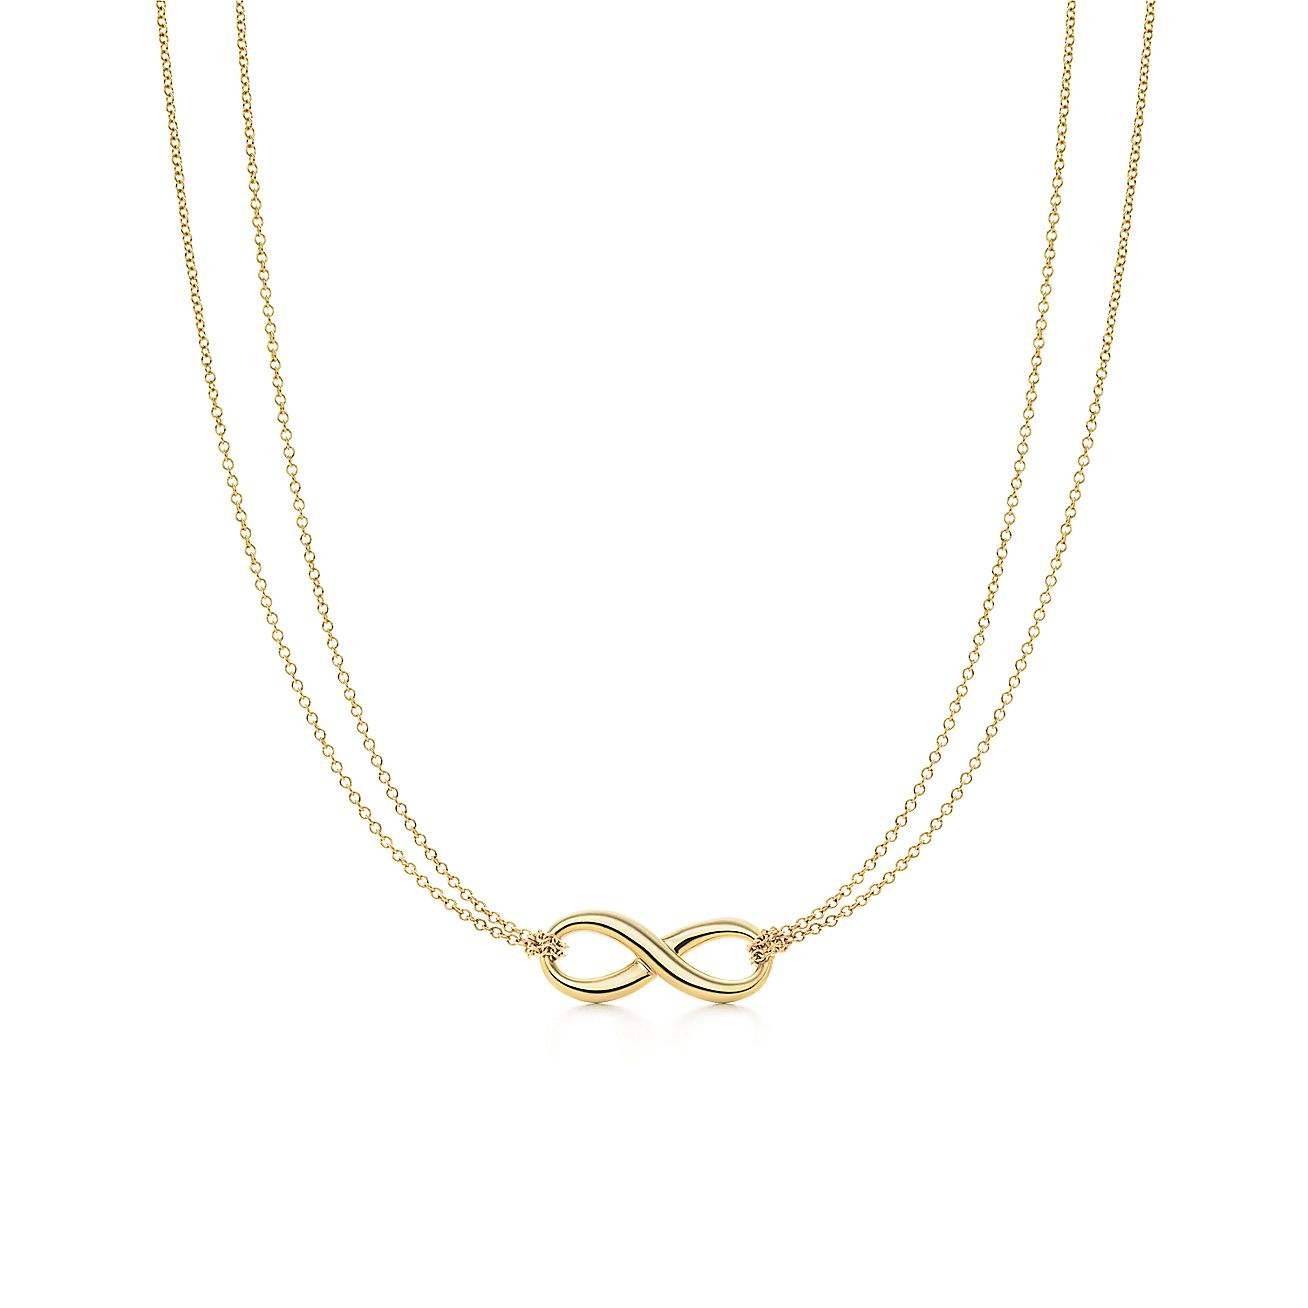 jewelry bracelets pendants co rings necklace collections infinity tiffany ca necklaces tiffanyinfinity sign cb